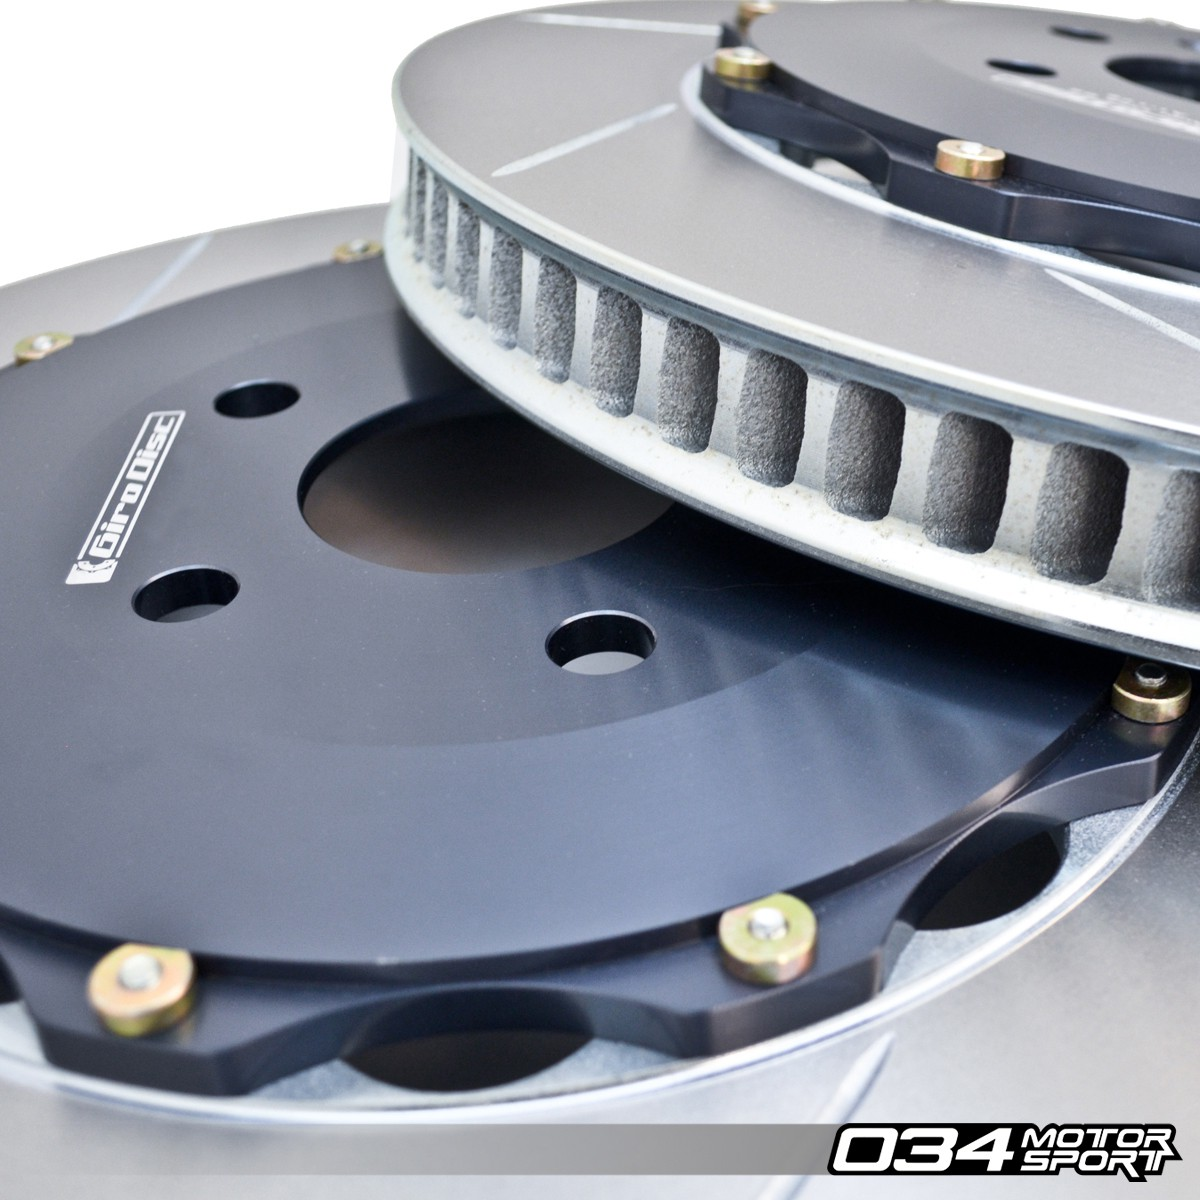 GiroDisc Rear 2-Piece Floating Rotor Pair for 8J Audi TTRS (MkII) | GIR-A2-152